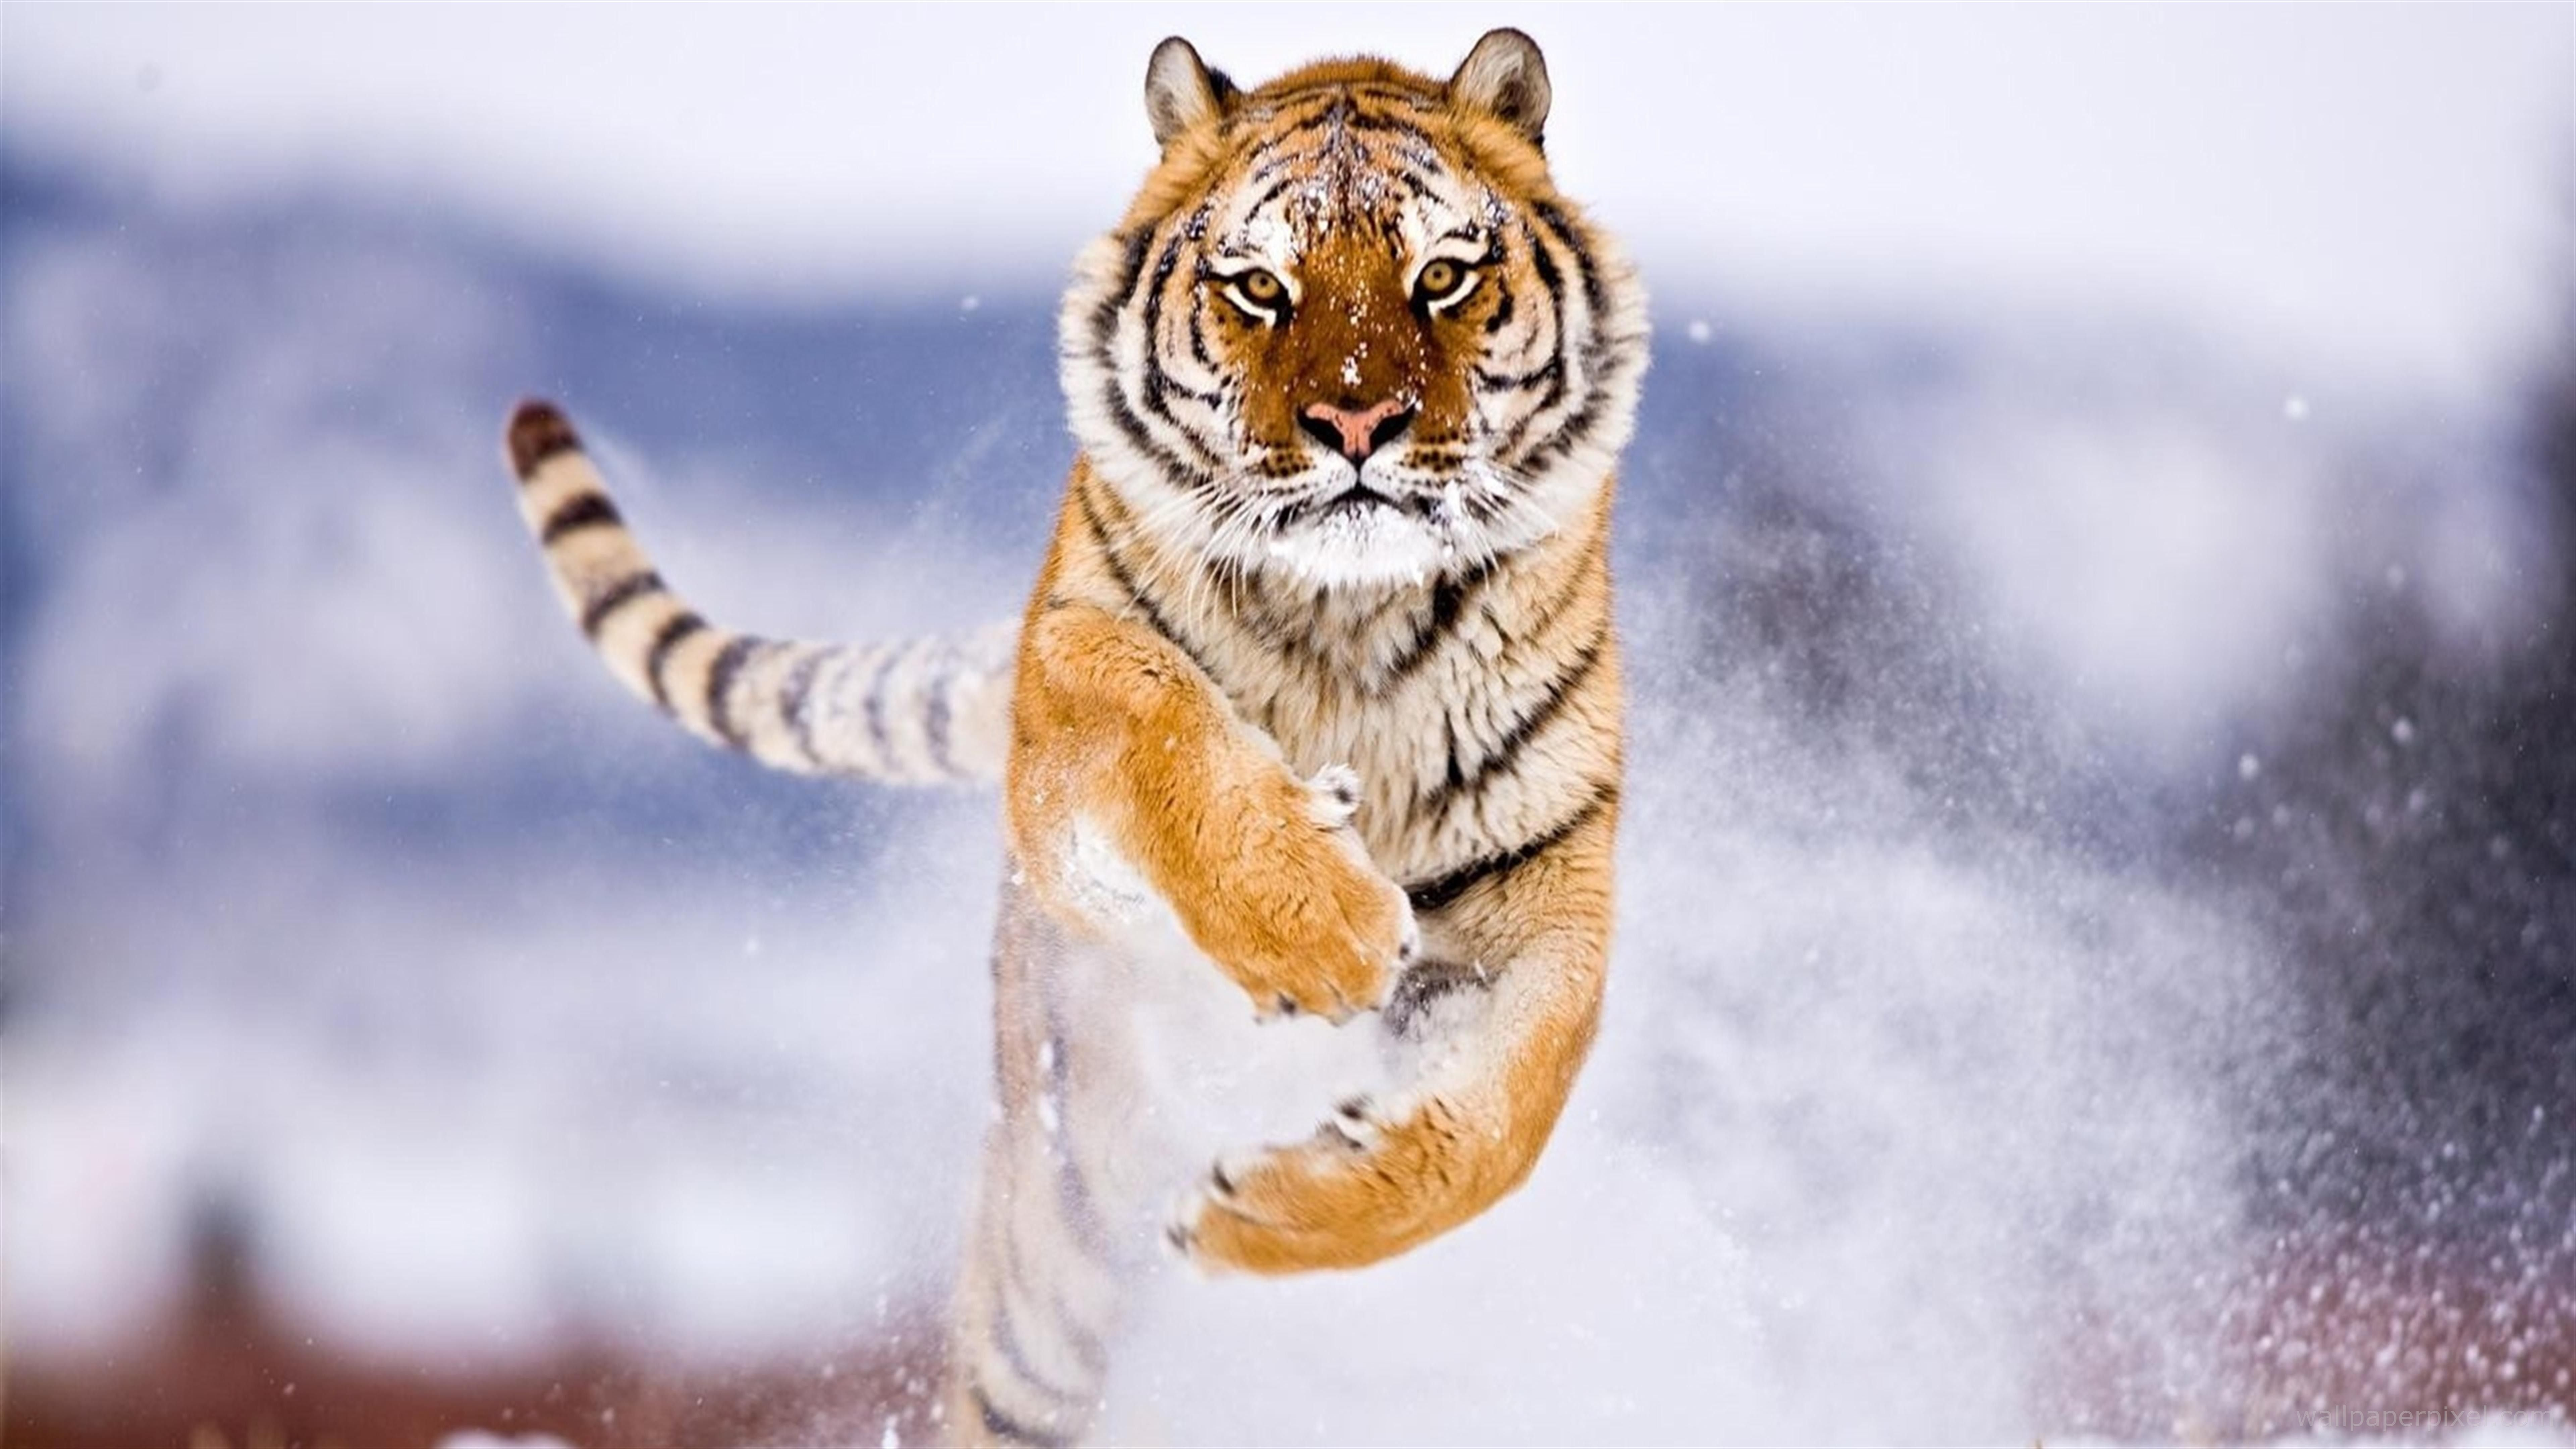 Tiger In Snow, HD Animals, 4k Wallpapers, Image, Backgrounds